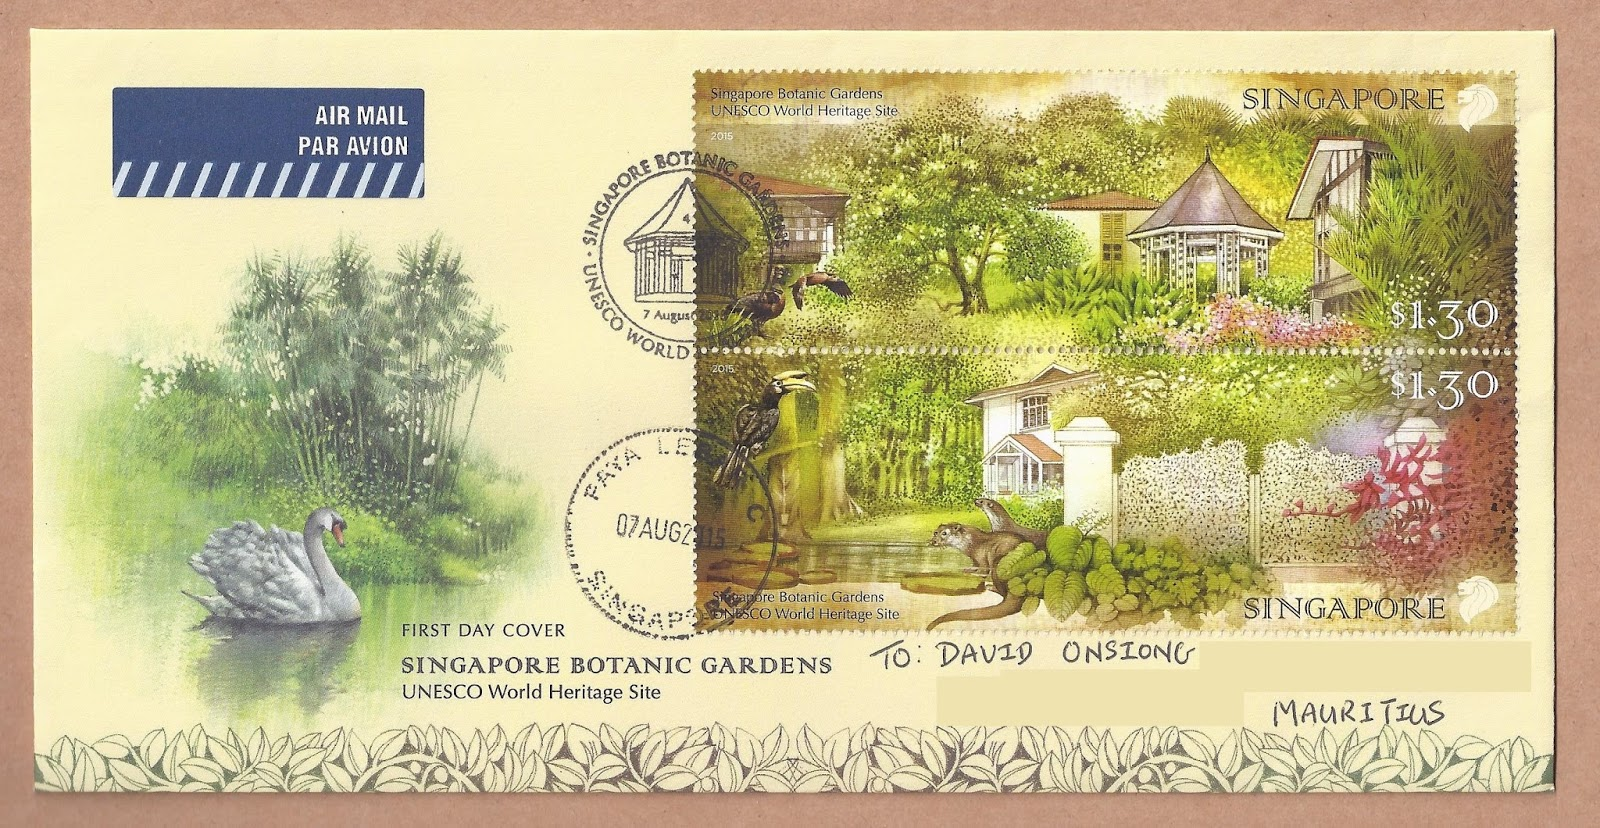 First Day Cover, The Singapore Botanic Gardens